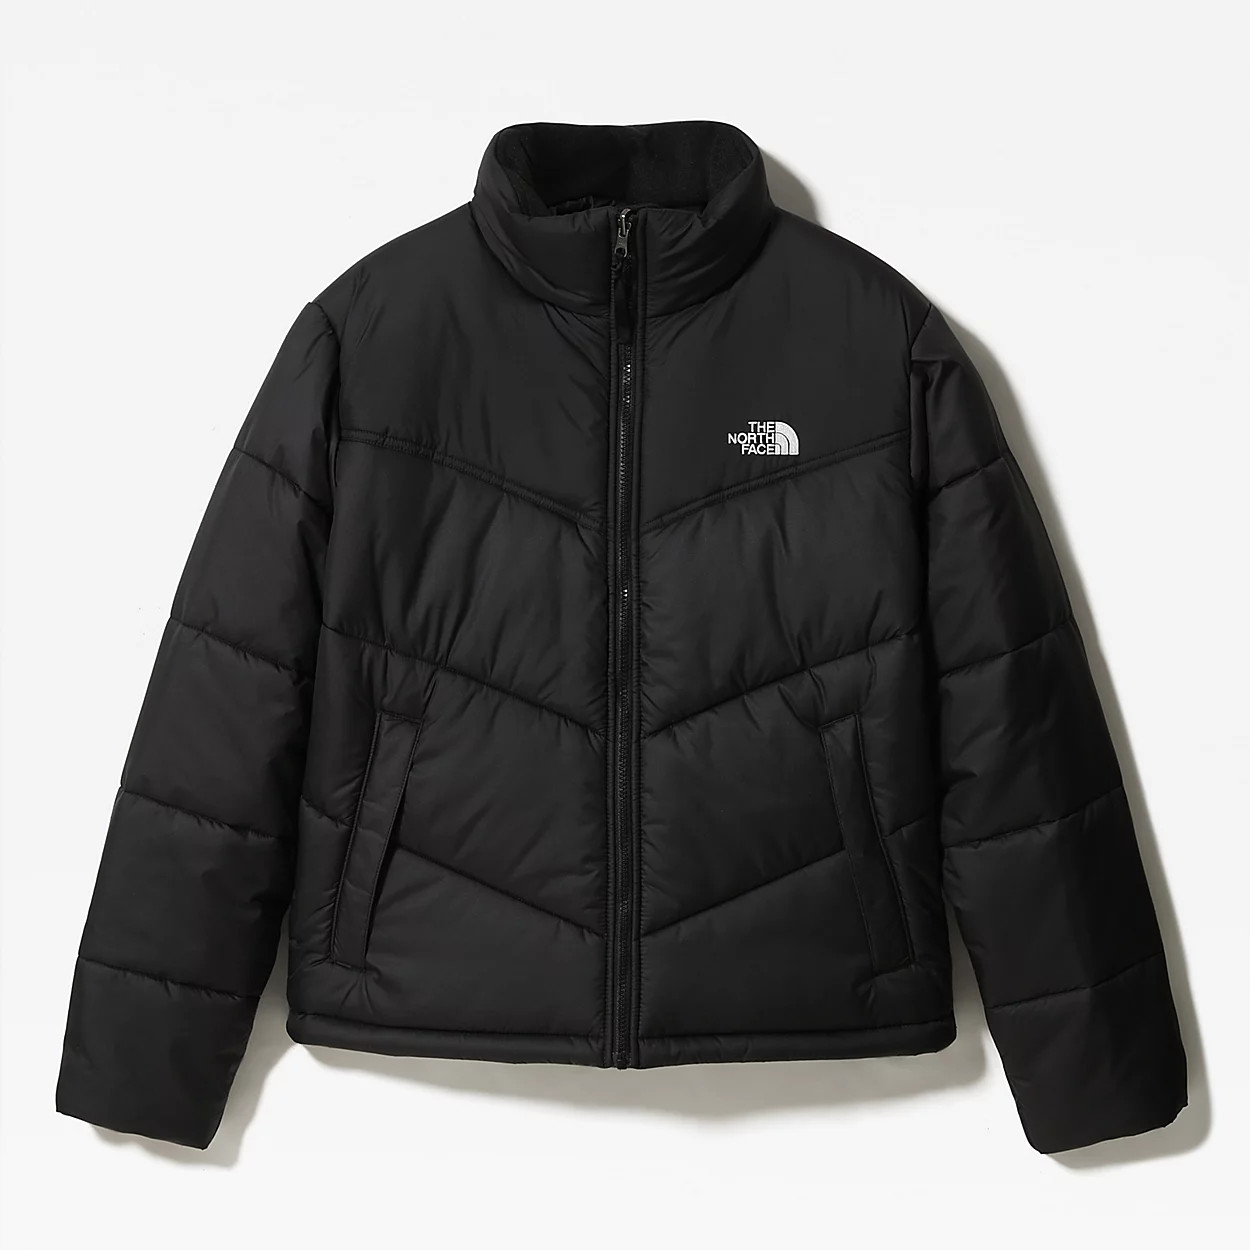 The North Face Giacca Uomo Saikuru black